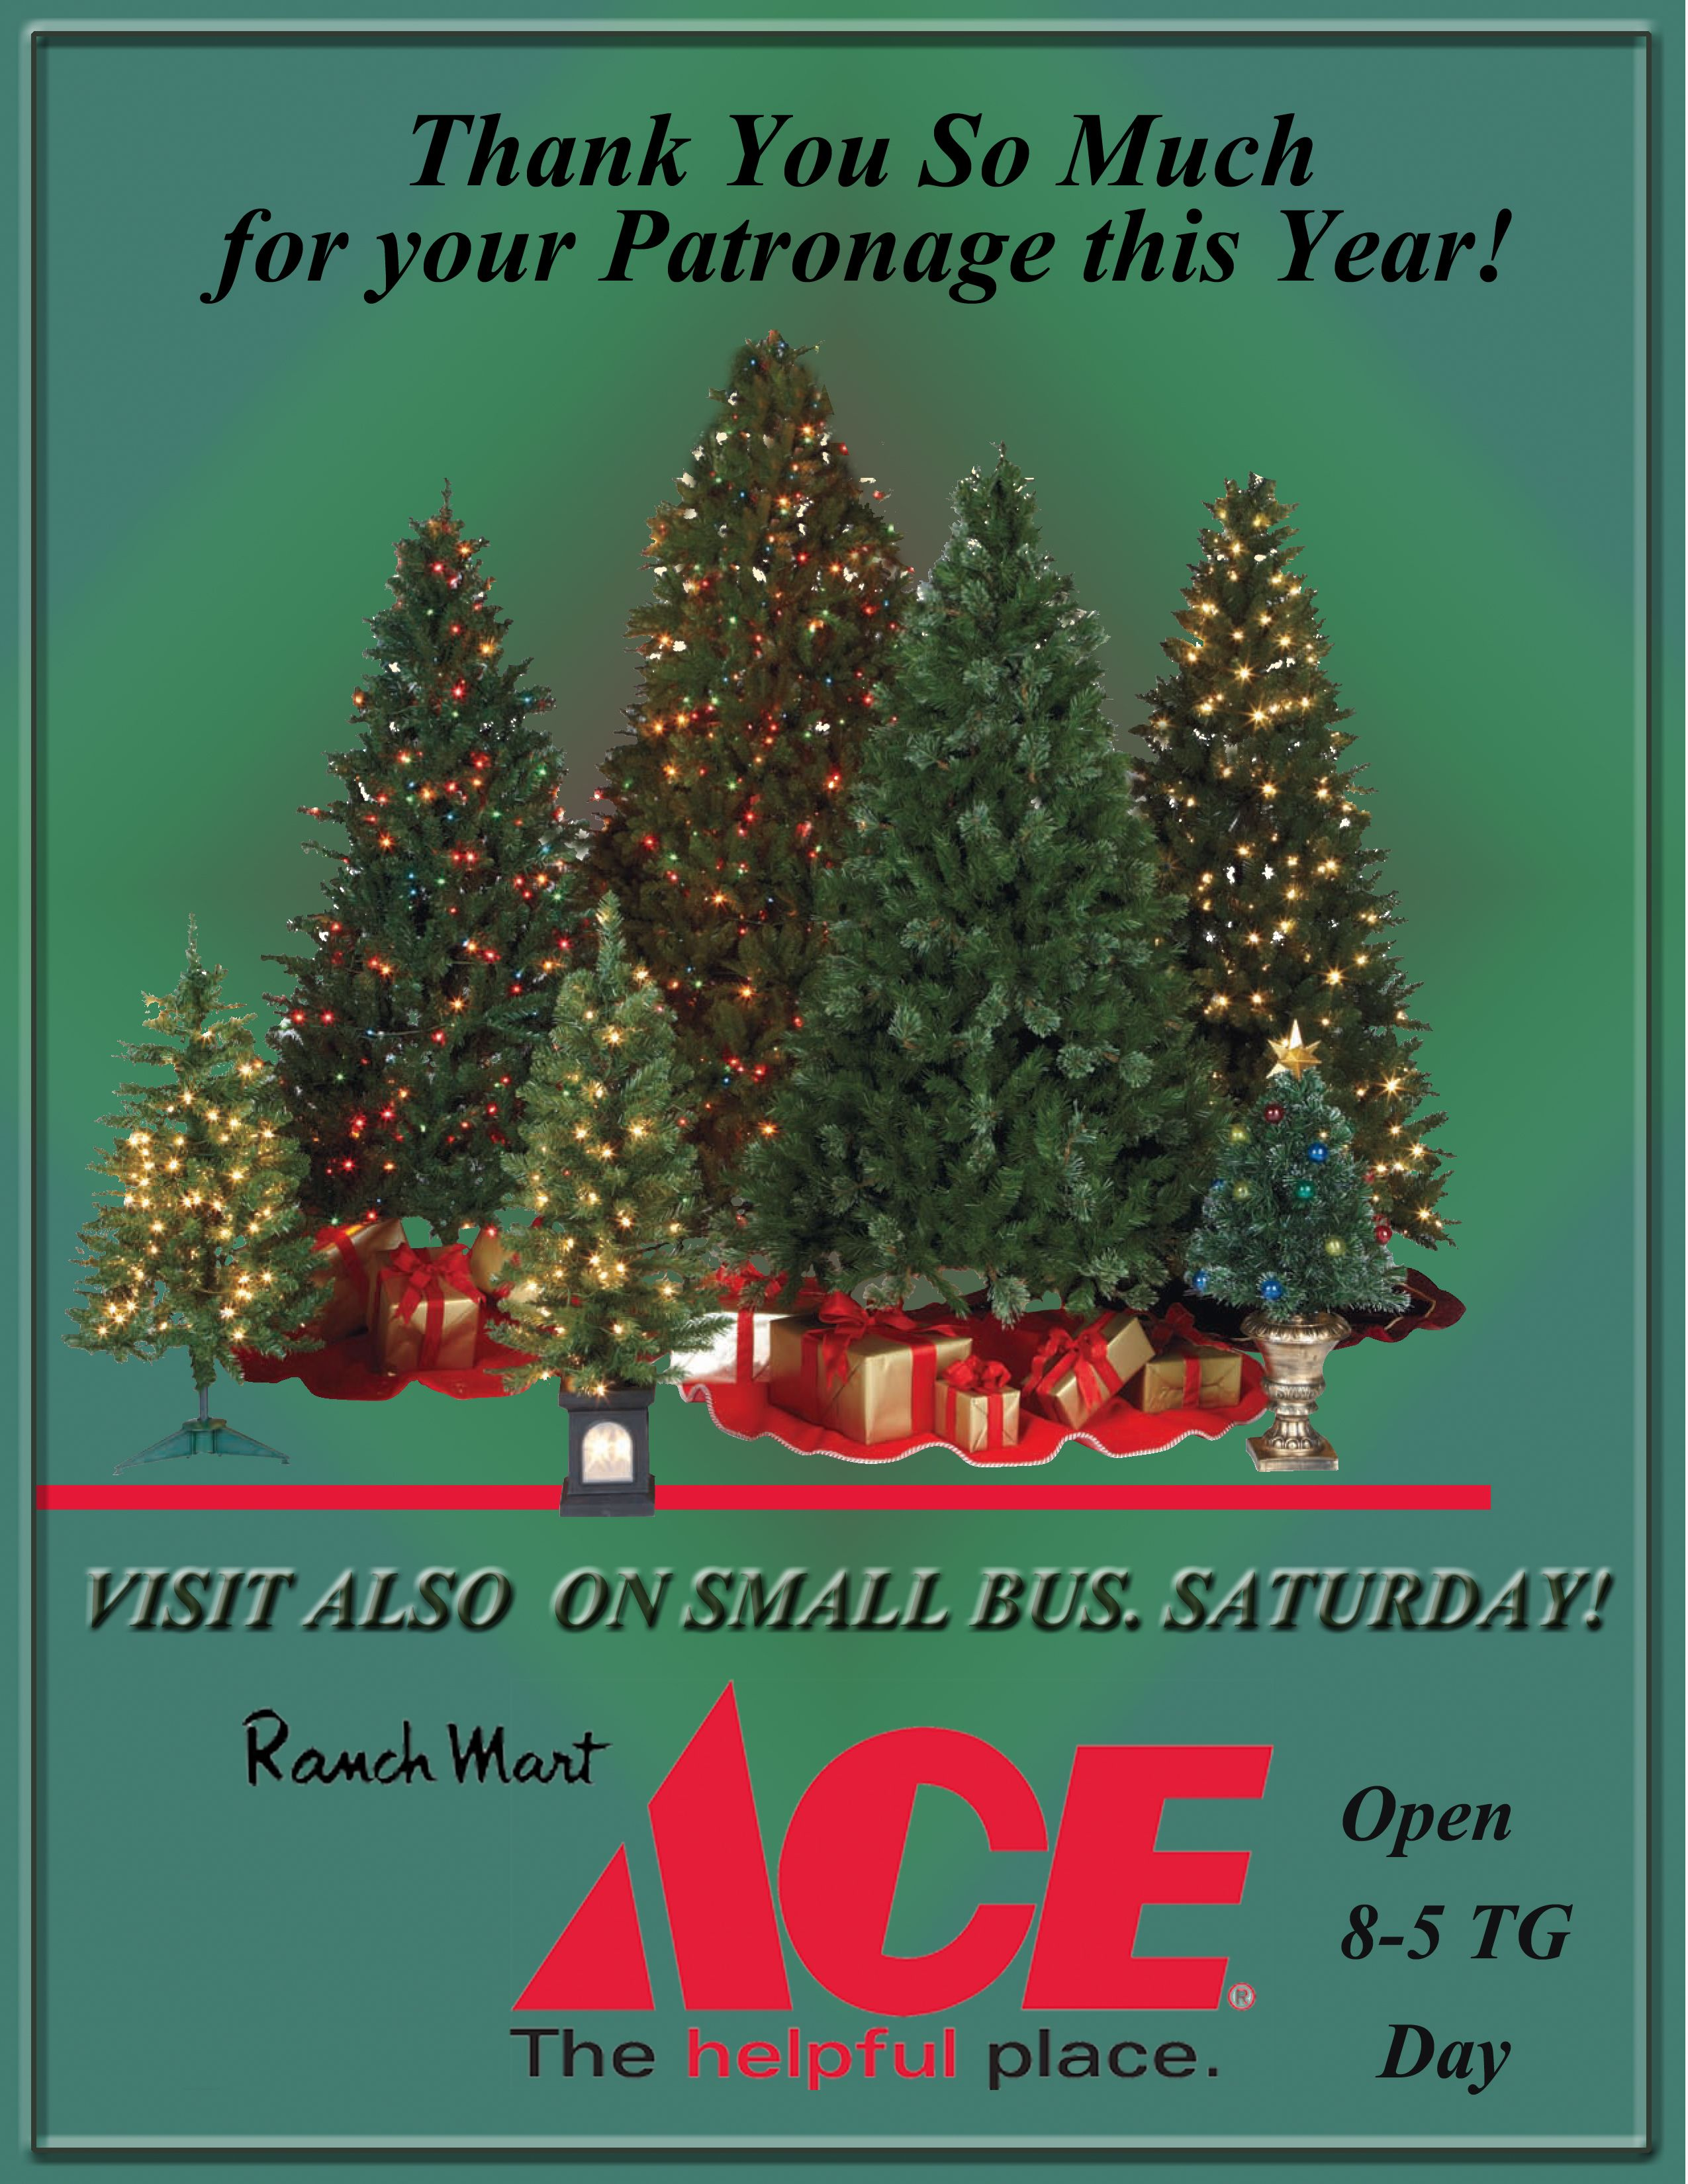 Ranch Mart Ace Hardware Open 8 5 Thanksgiving Black Friday Sale And Don T Forget Small Busi Ace Hardware Small Business Saturday Novelty Christmas